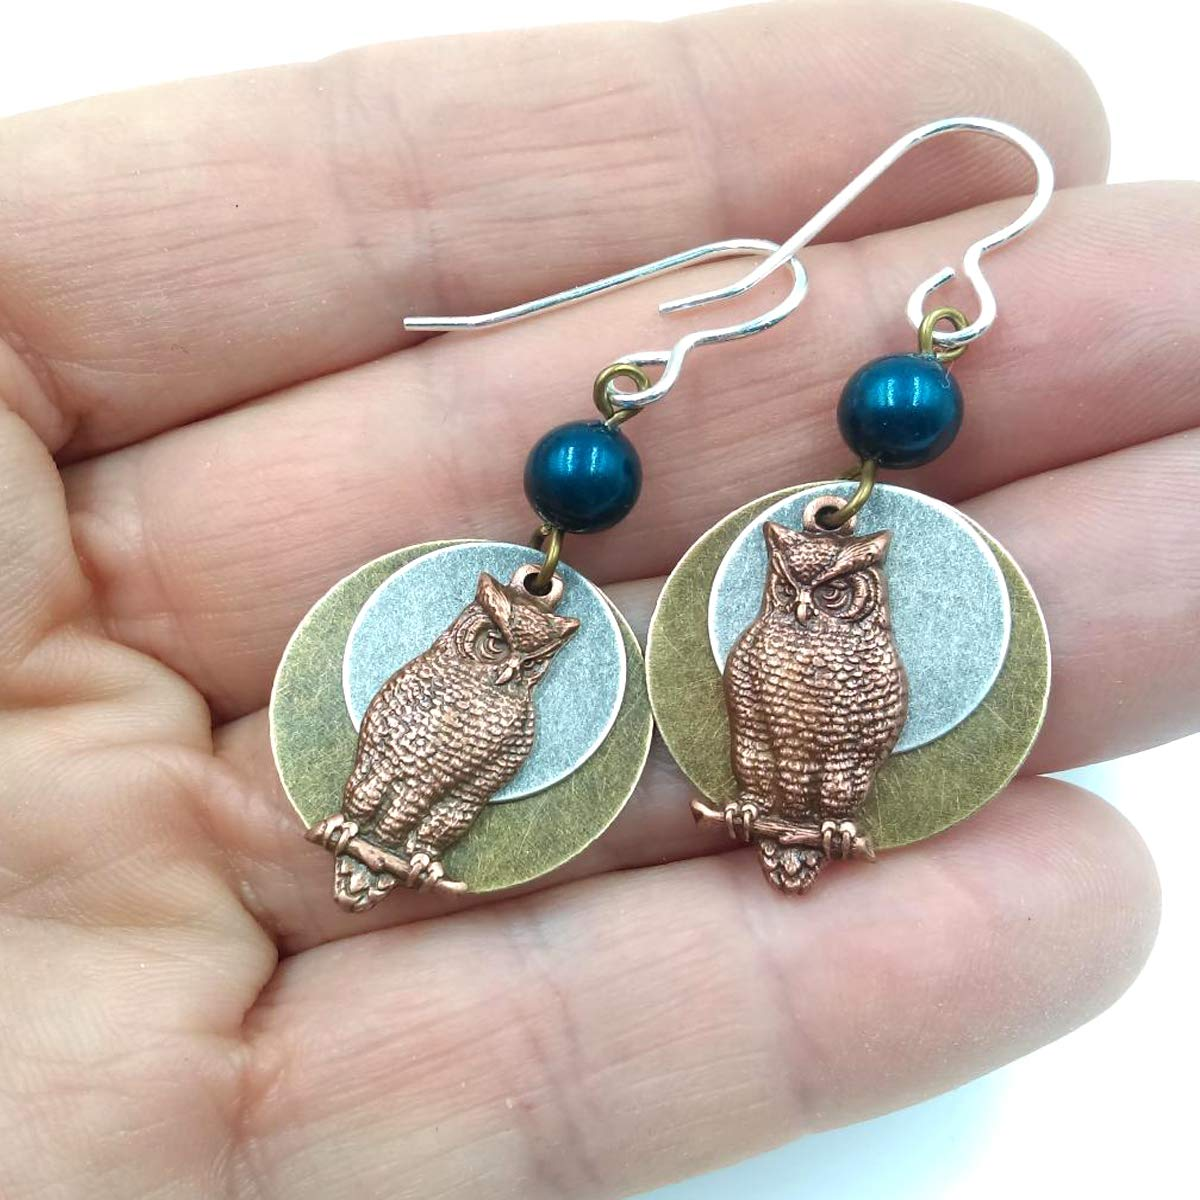 Antique Copper Owls with 2 Flat Round Mixed Metal Circle Earrings with 6mm Dark Teal Bead Dangle Drop